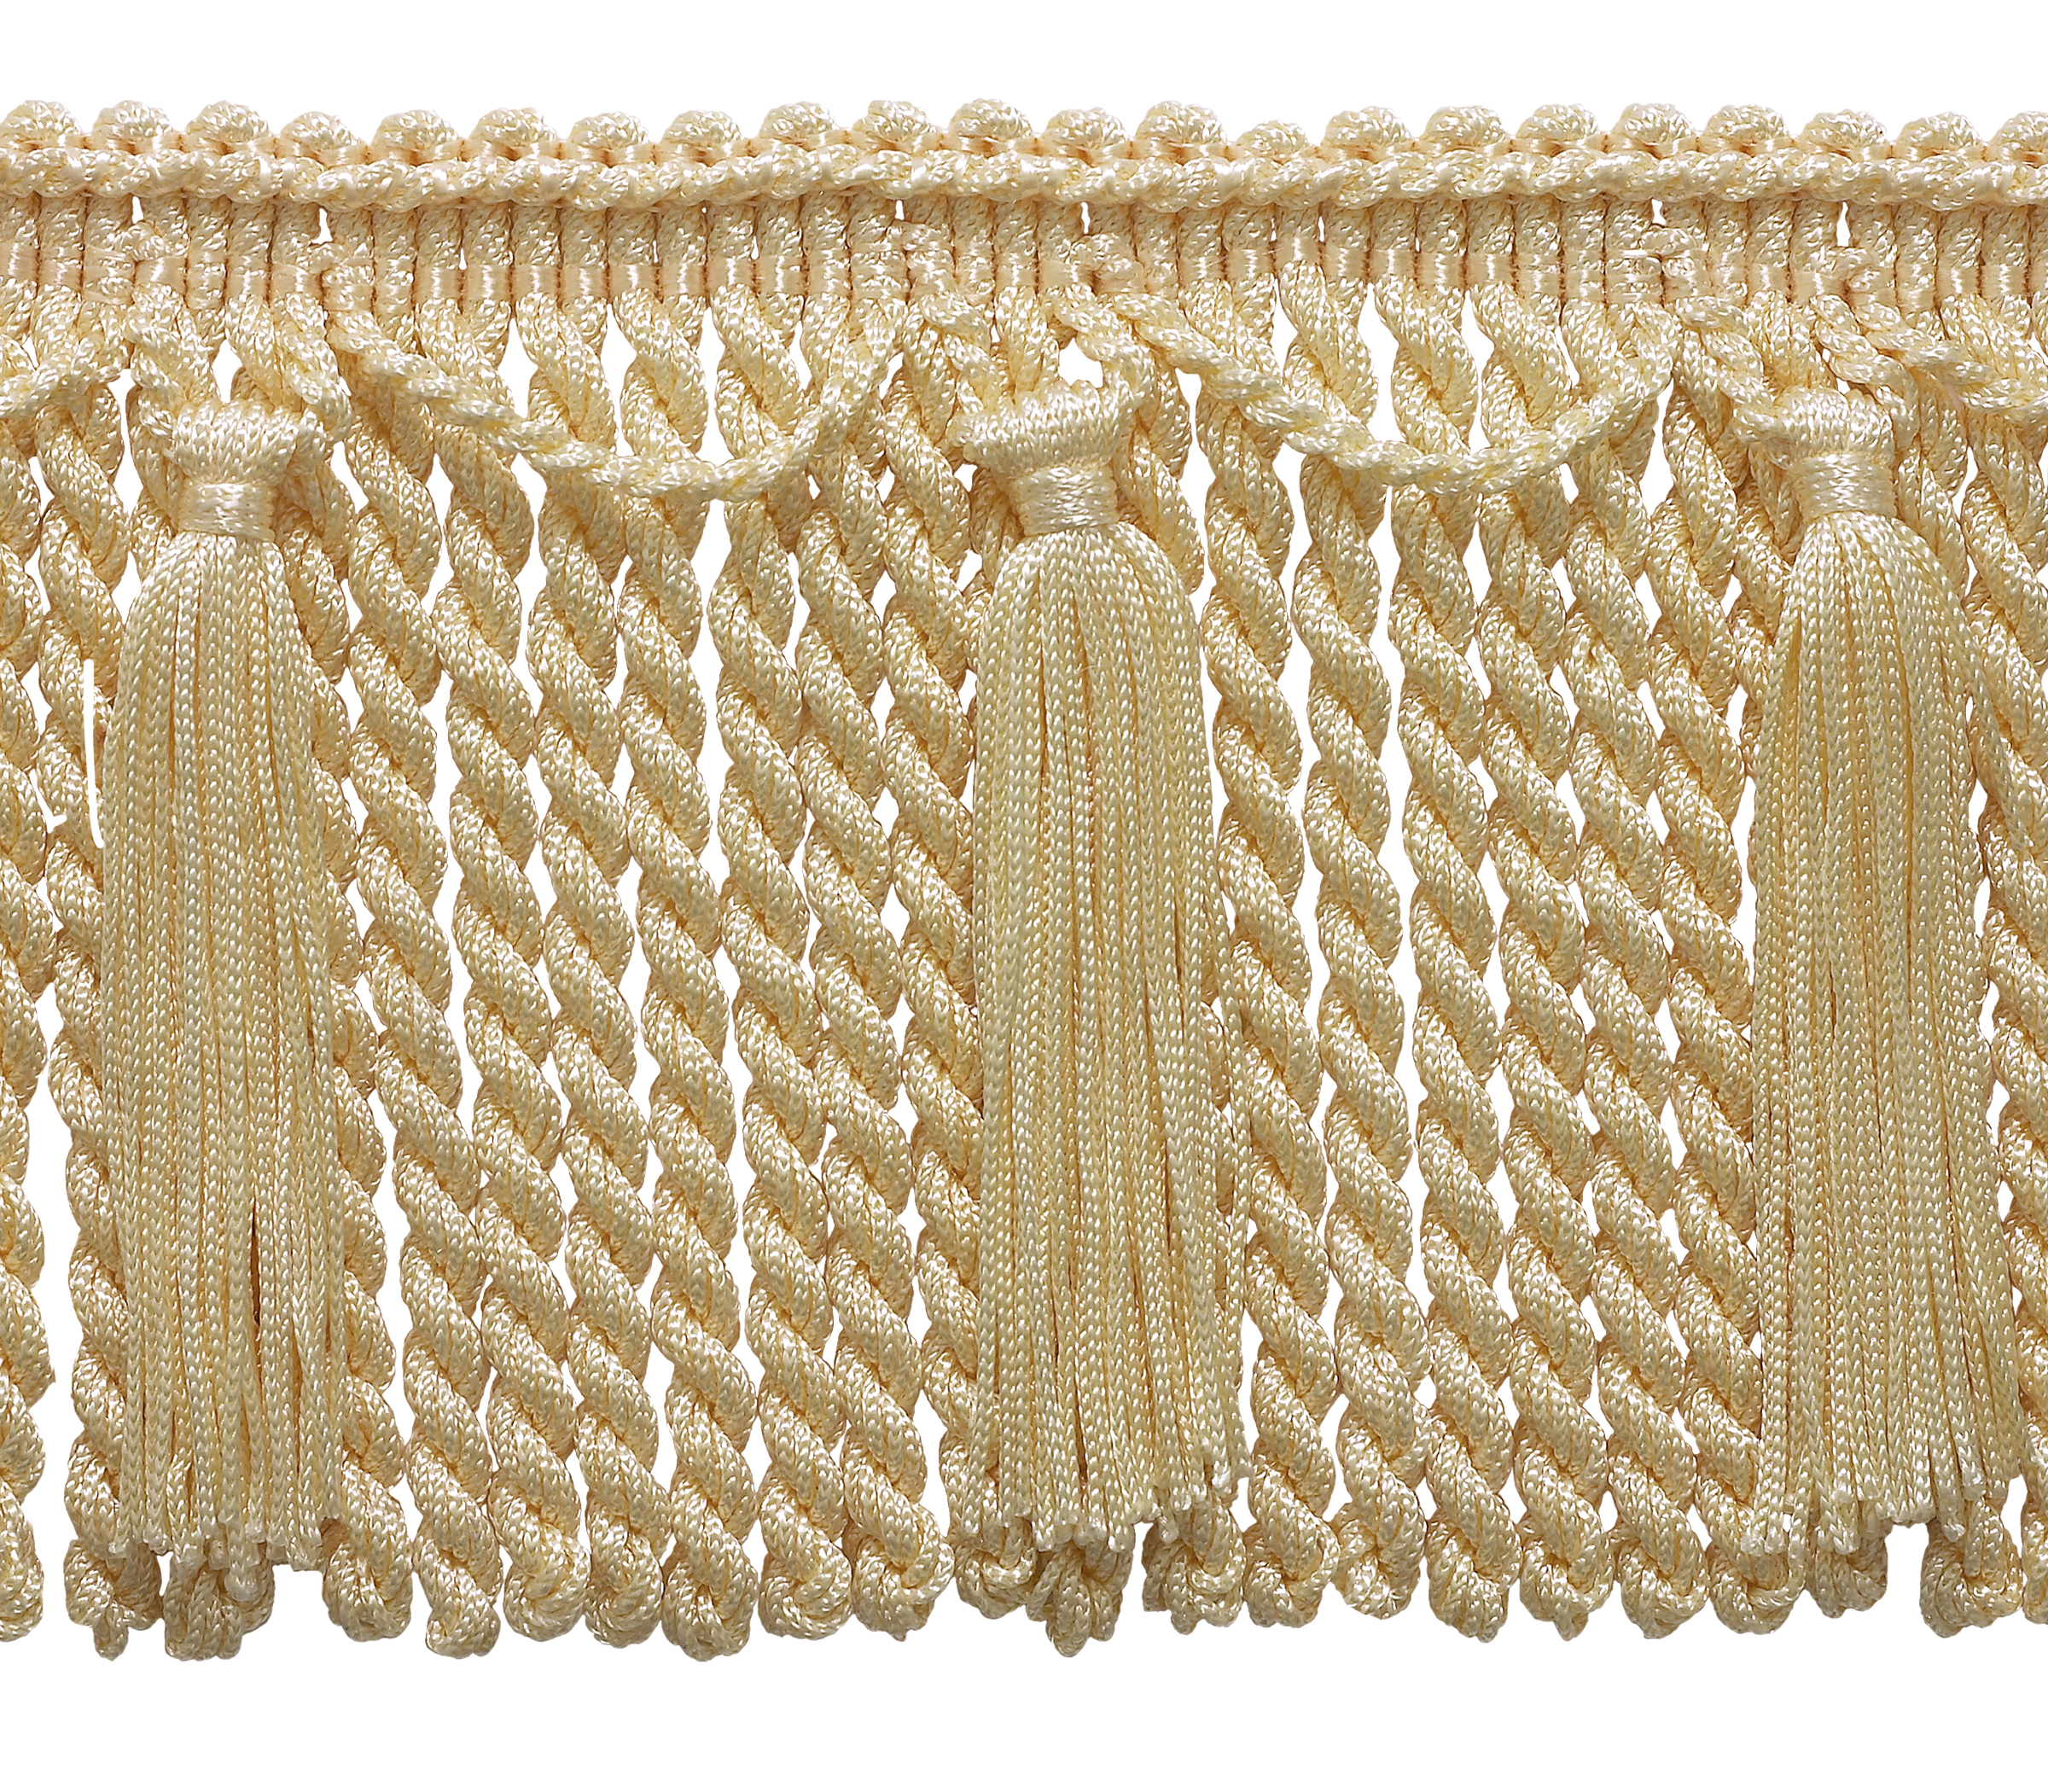 """CHAINETTE BULLION FRINGE 6"""" Style# CBF6 Color: CREAM - A2 (Sold by The Yard)"""